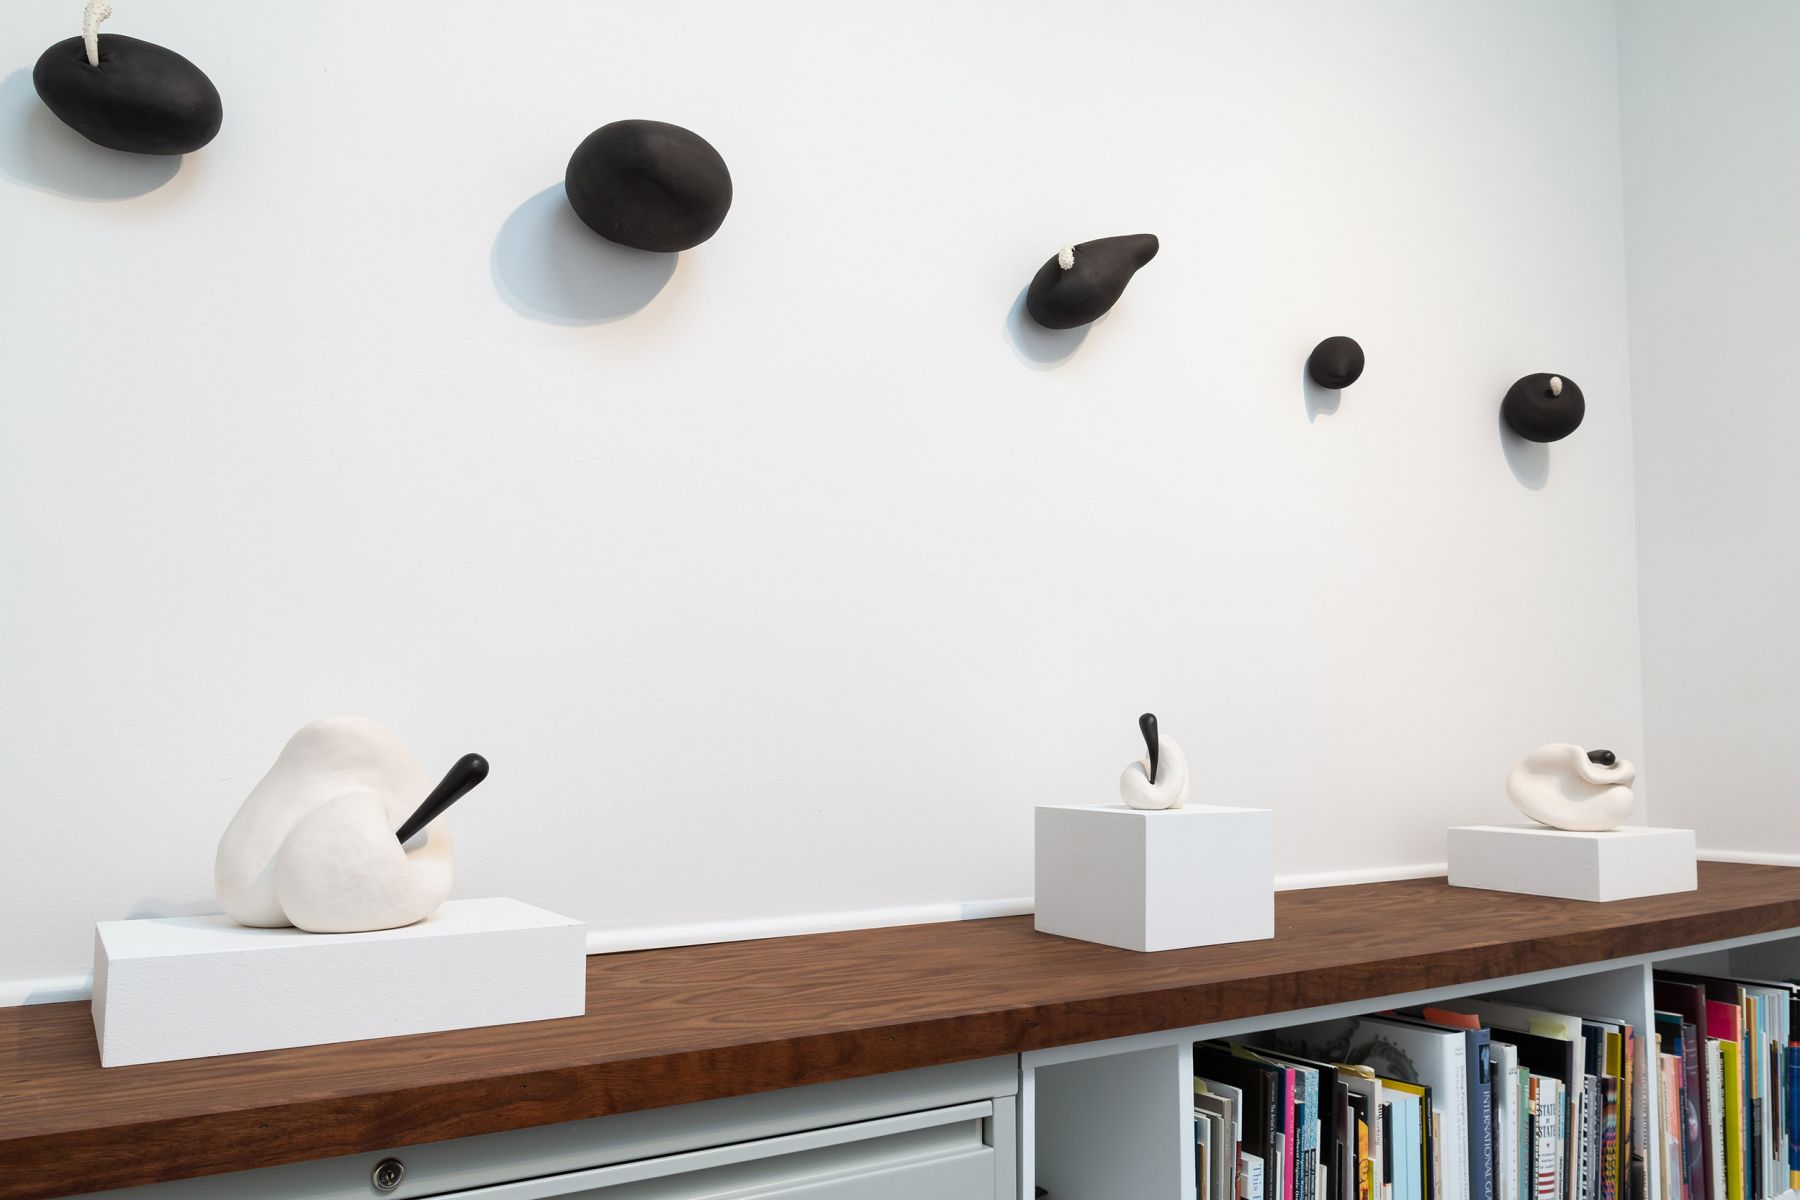 """Maya Vivas - selections from """"i have no choice but to suck the juice out, and who am i to blame"""" - July/August 2019 - Russo Lee Gallery - Installation view 09"""